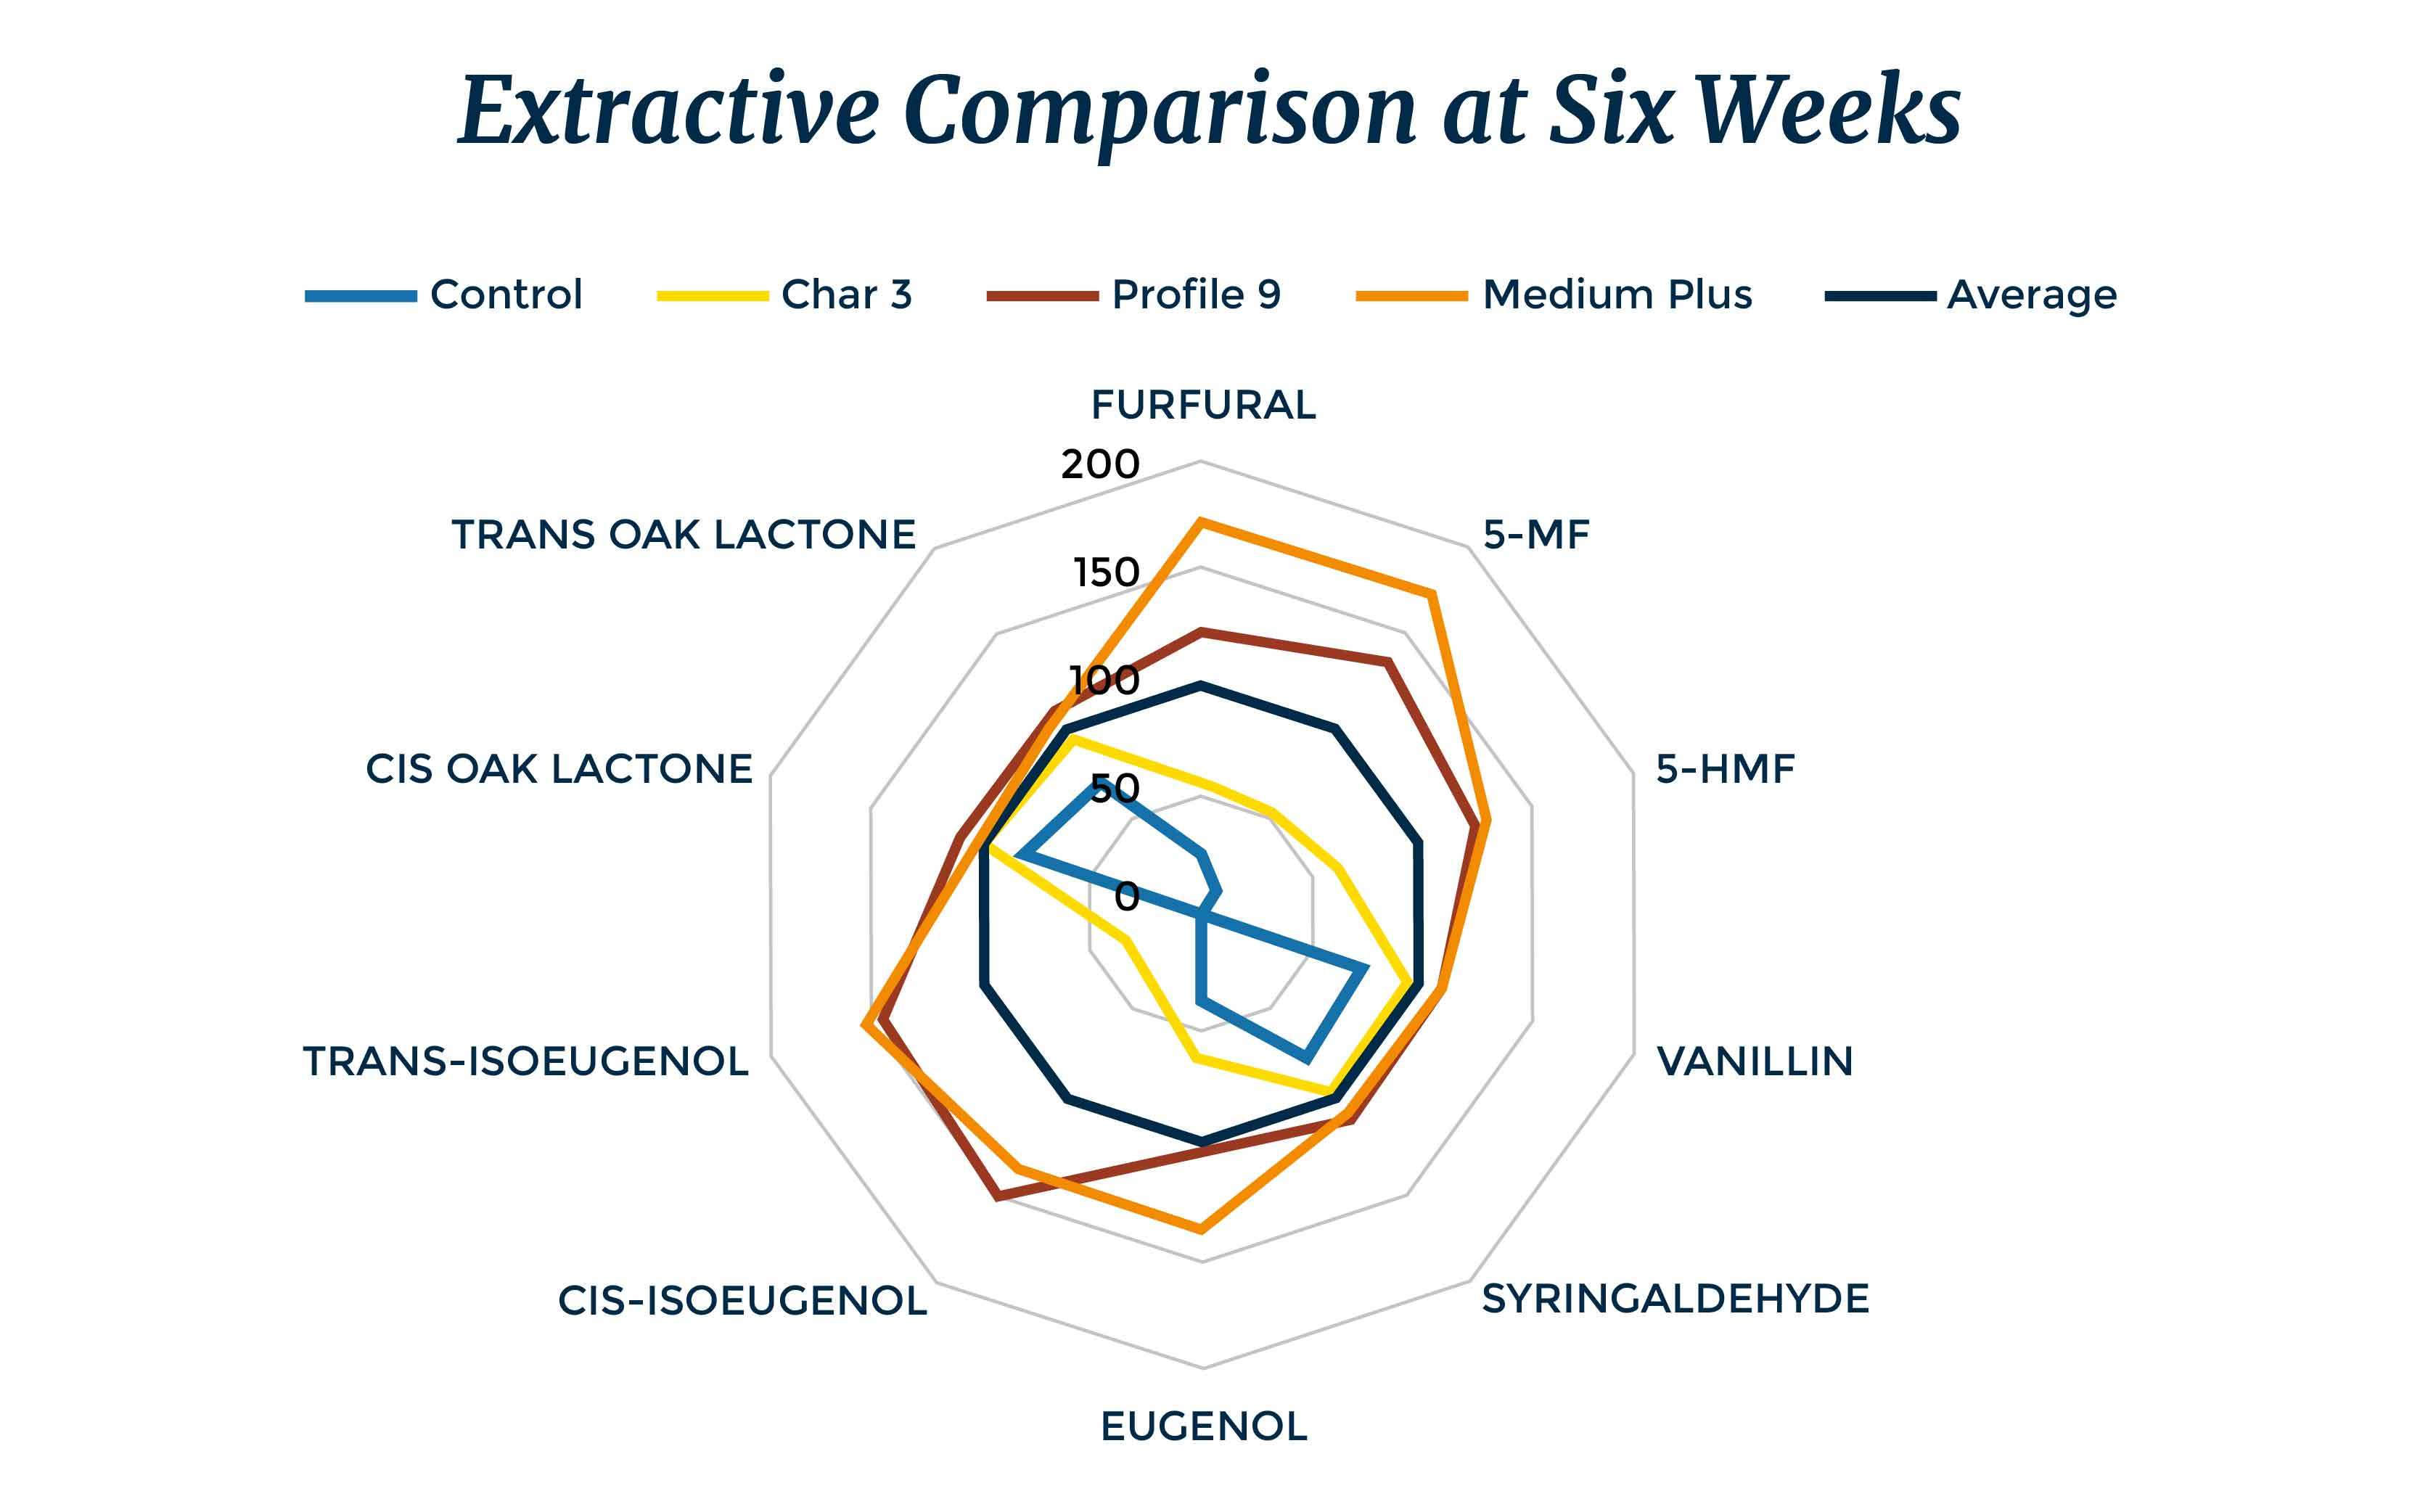 Extractive Comparison at Six Weeks